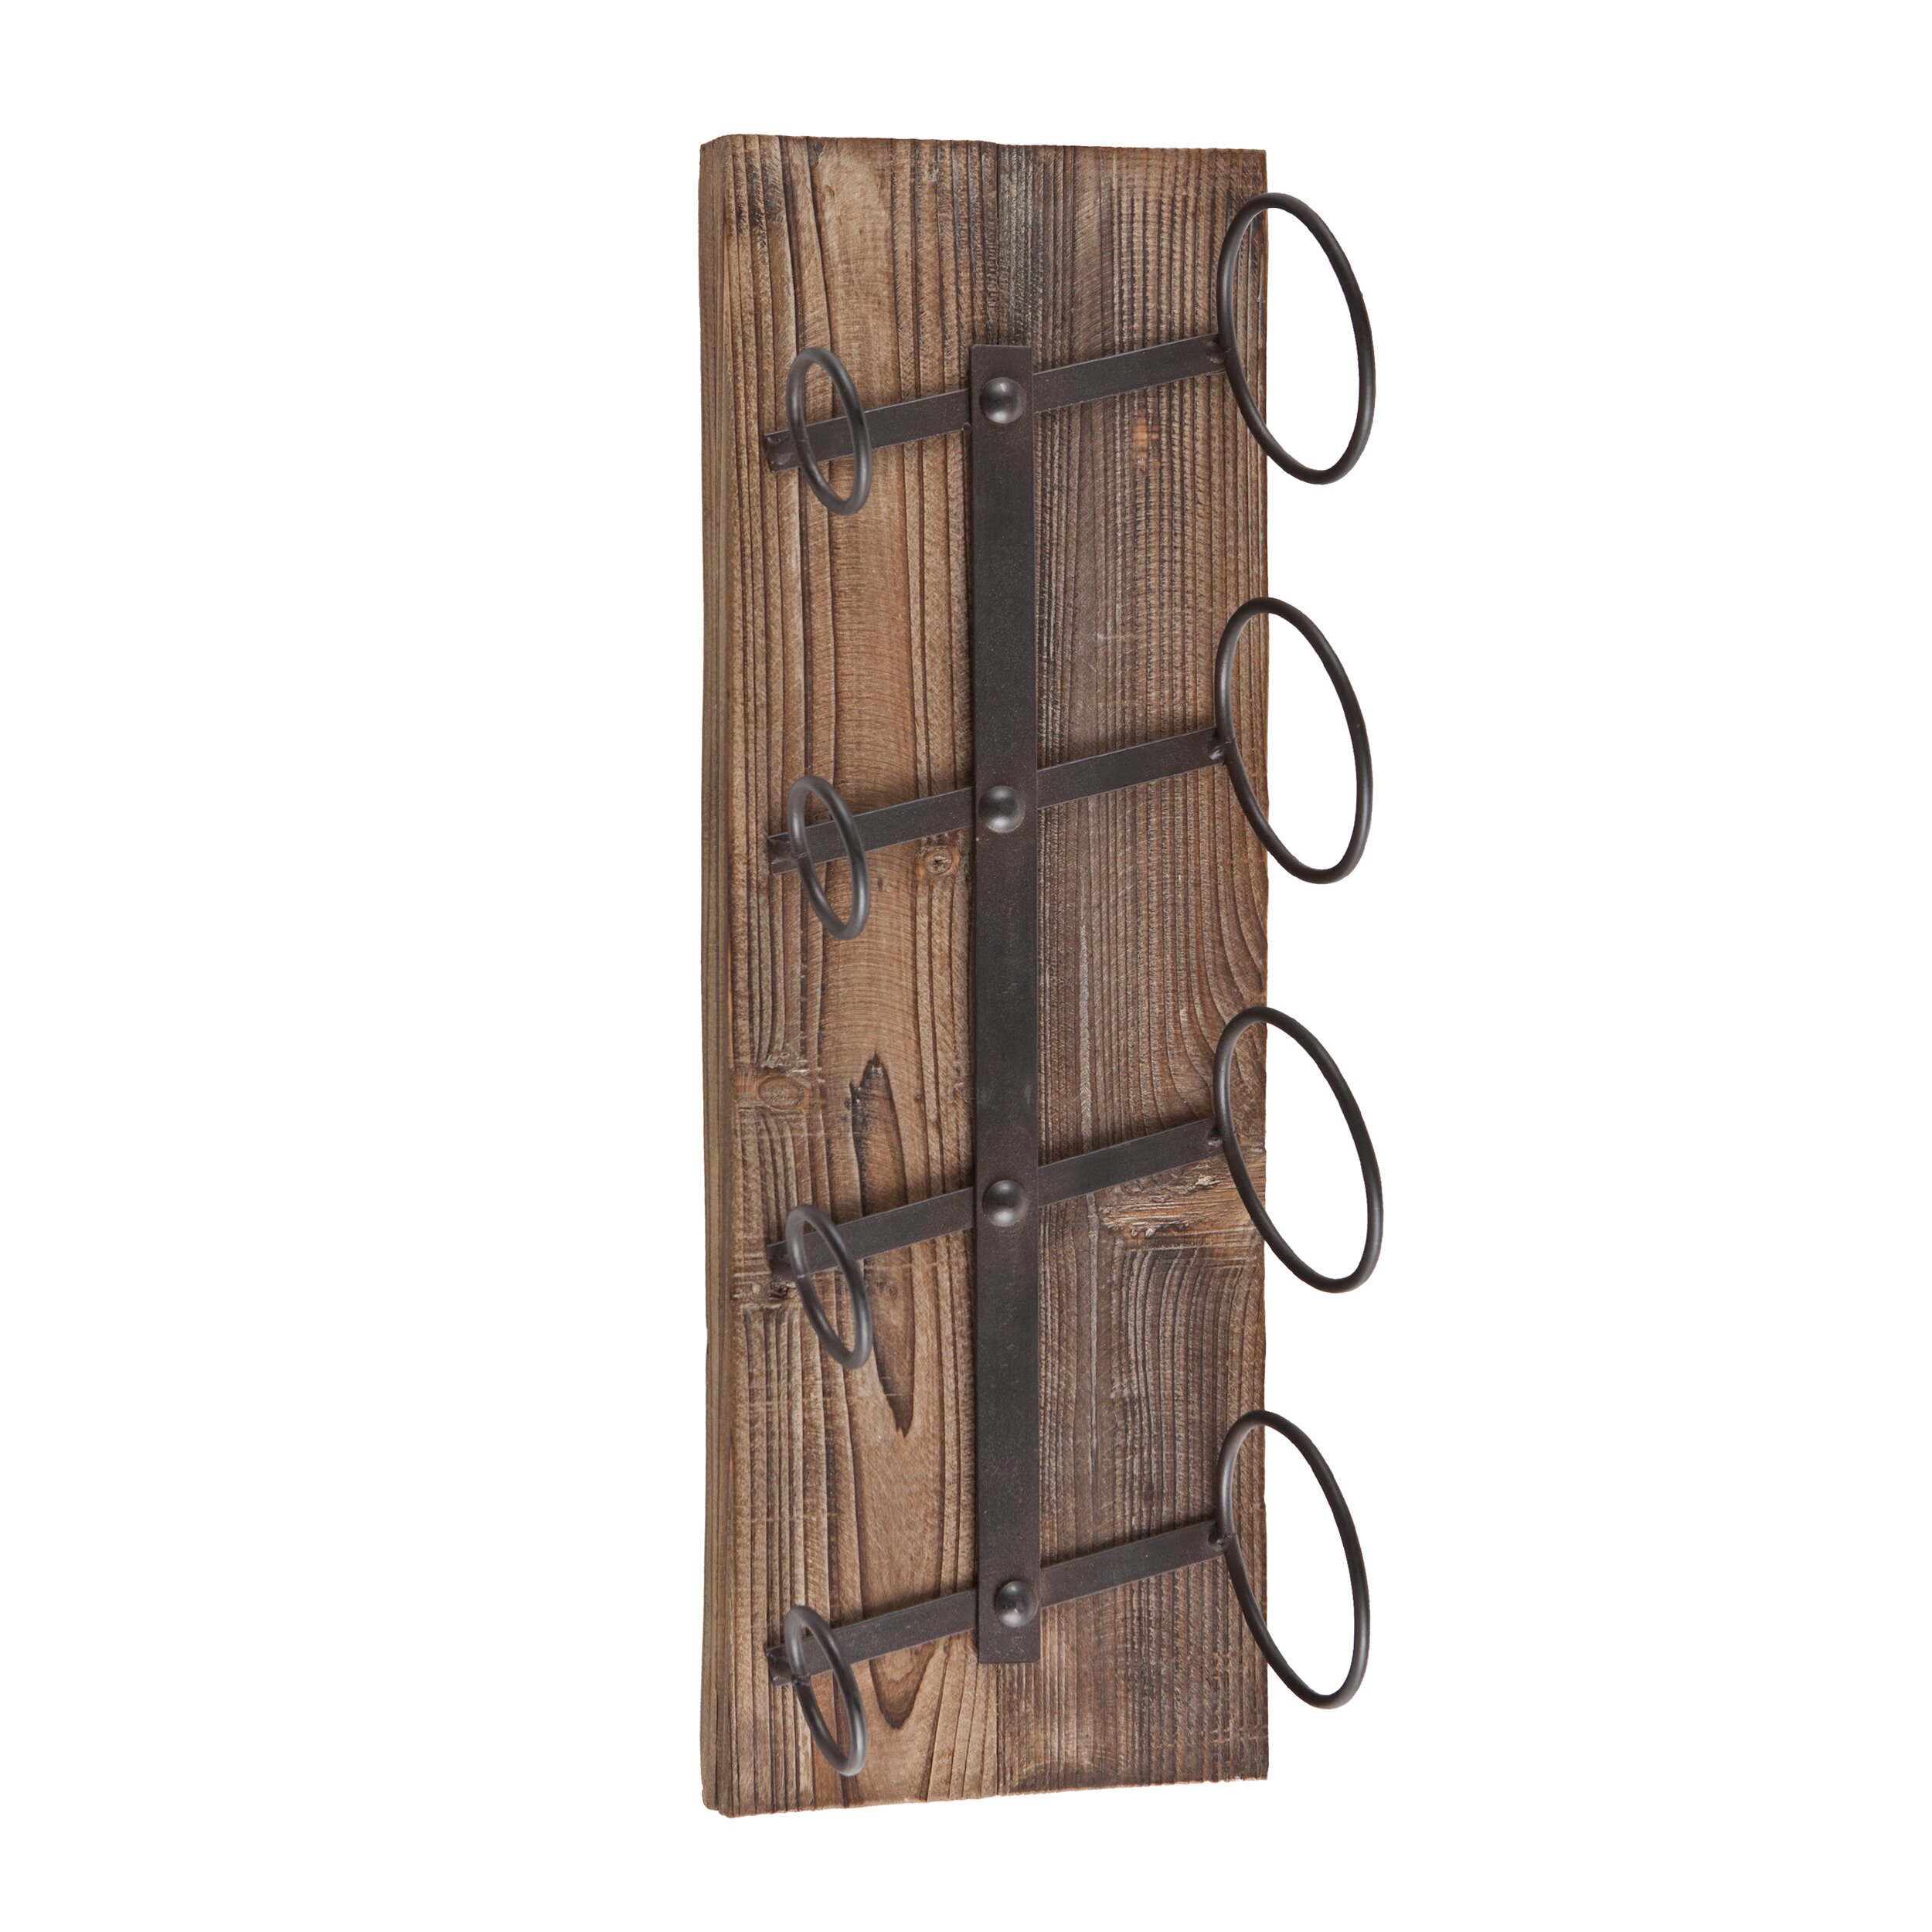 wildon home wicklow 4 bottle wall mounted wine rack reviews wayfair. Black Bedroom Furniture Sets. Home Design Ideas